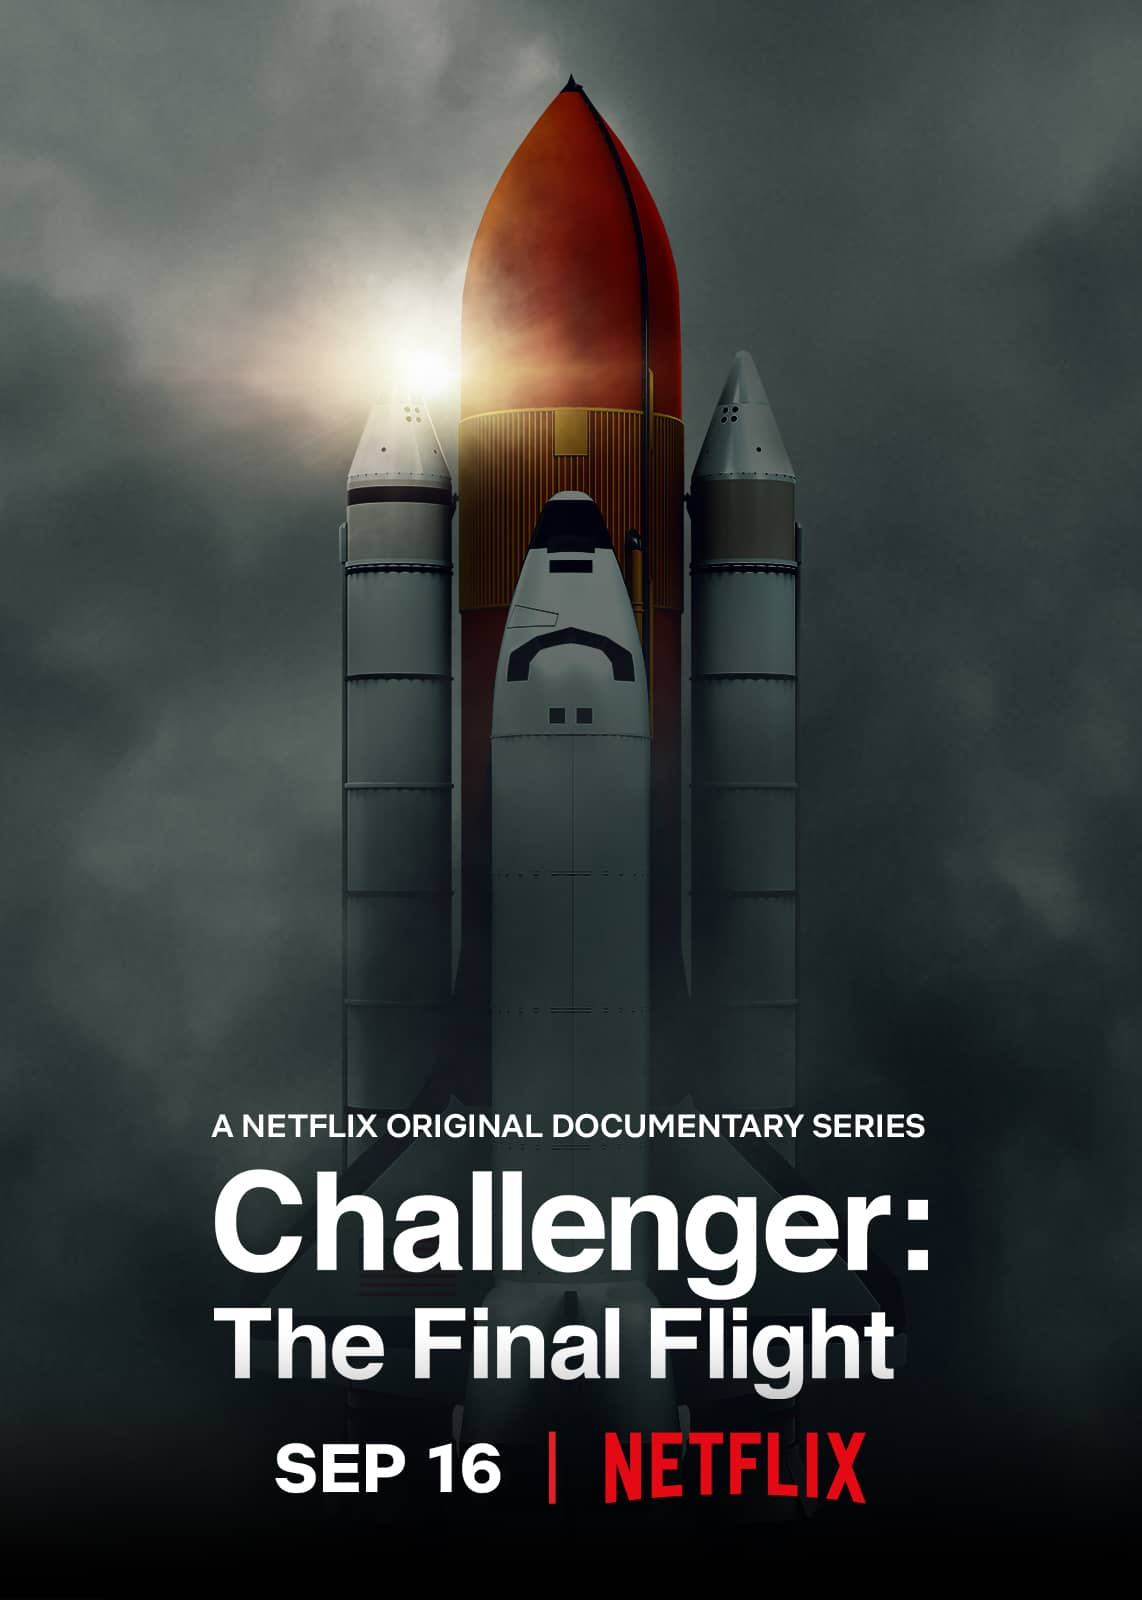 Netflix - Challenger DI Colorist Shane Reed